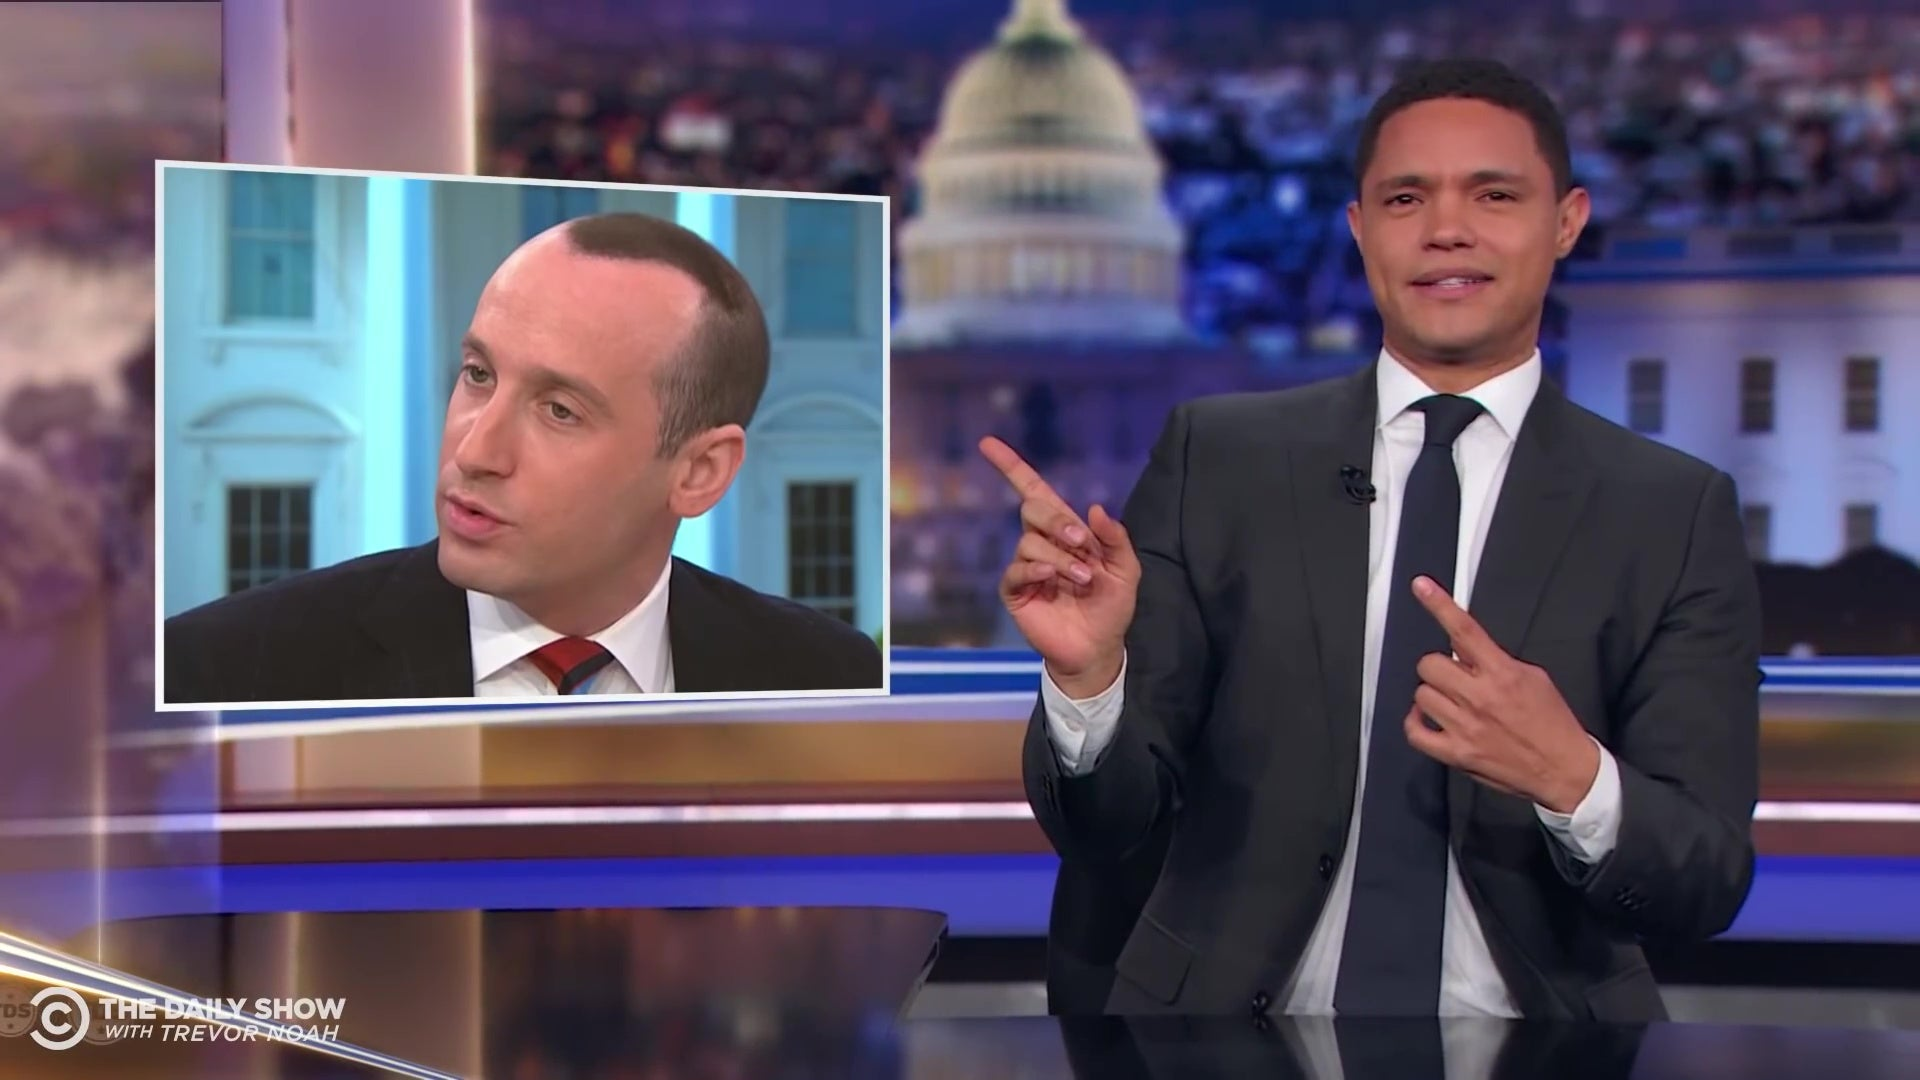 Trevor Noah, looking in confusion at a picture of Stephen Miller's strange hairstyle.